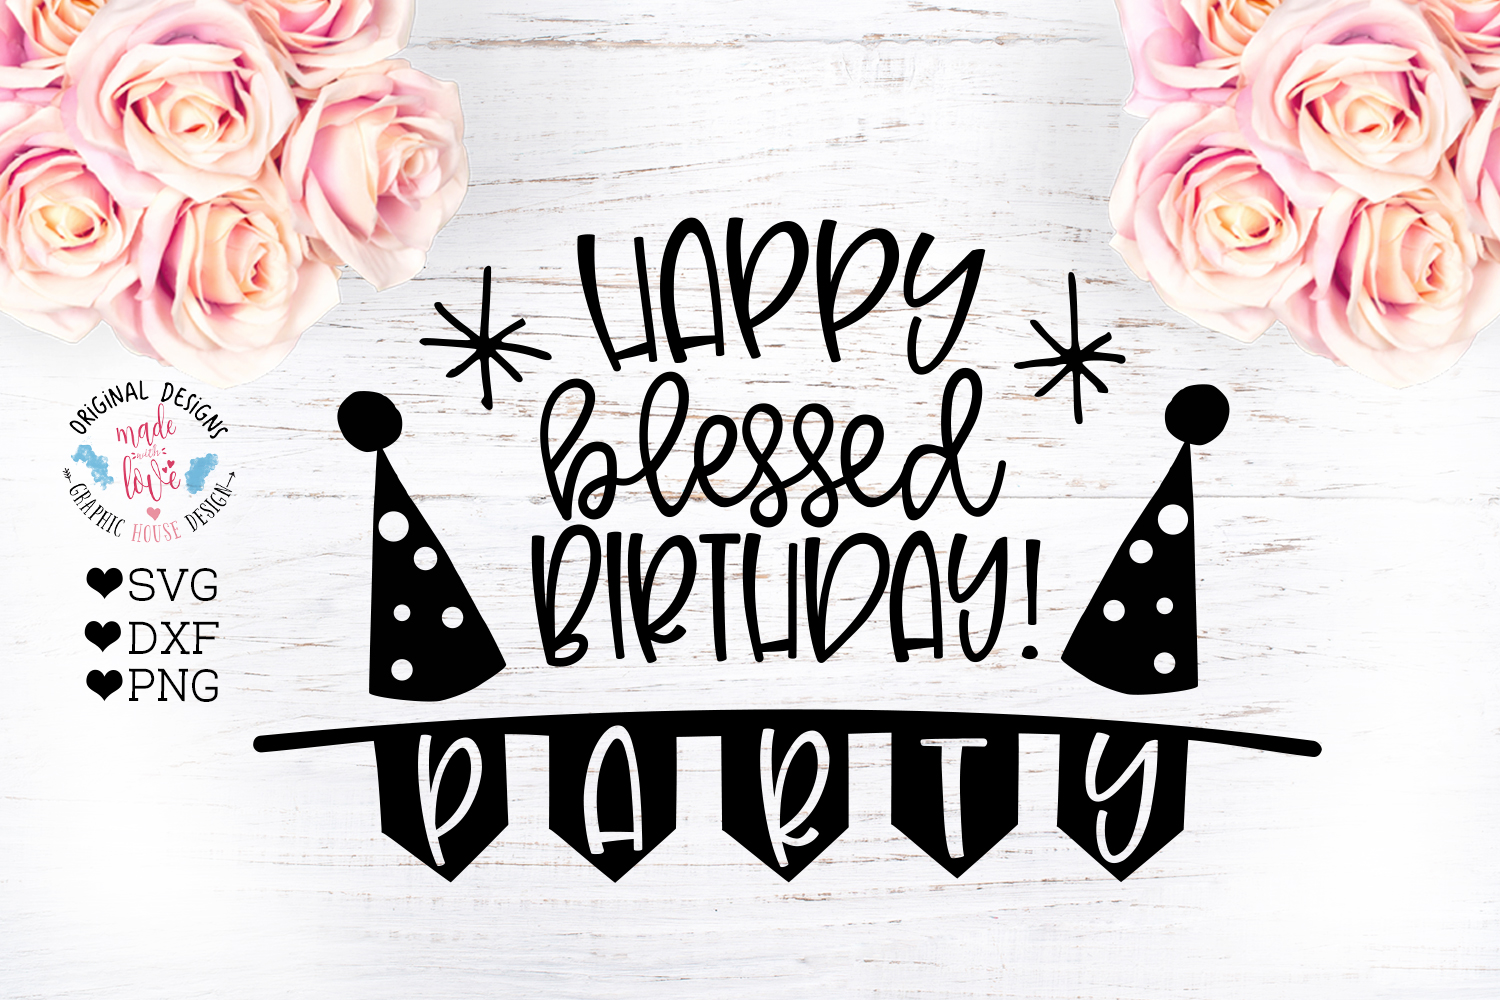 Download Free Happy Blessed Birthday Party Cut File Graphic By for Cricut Explore, Silhouette and other cutting machines.